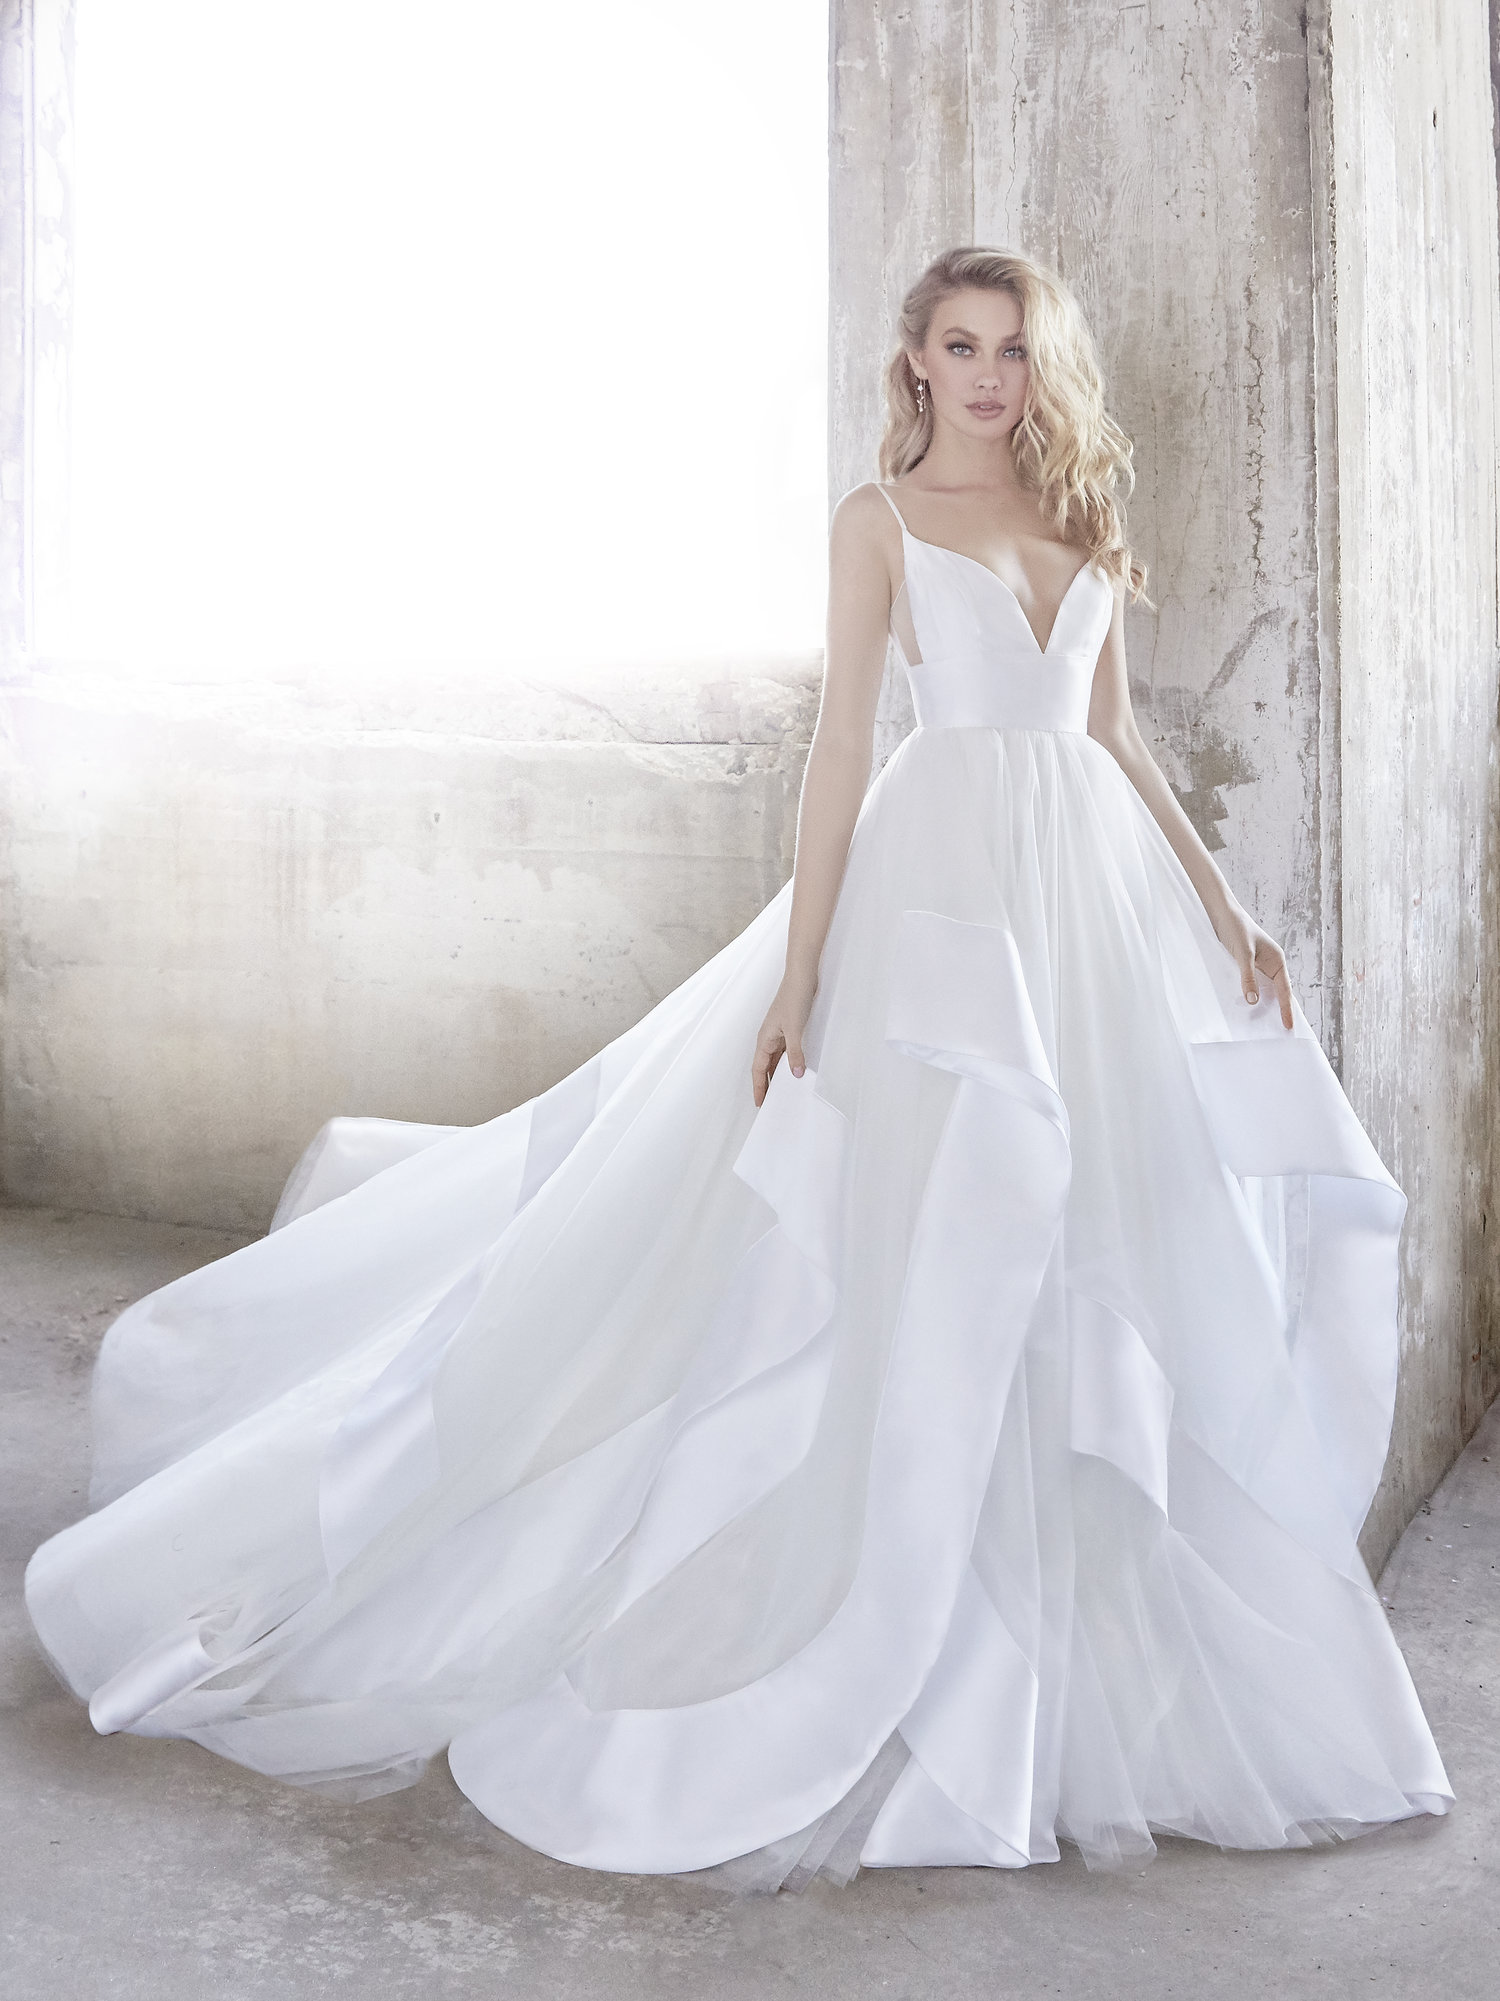 2de62b0b3a Hayley Paige Trunk Show — Columbus Ohio Designer Bridal Gowns - La Jeune  Mariee Collection